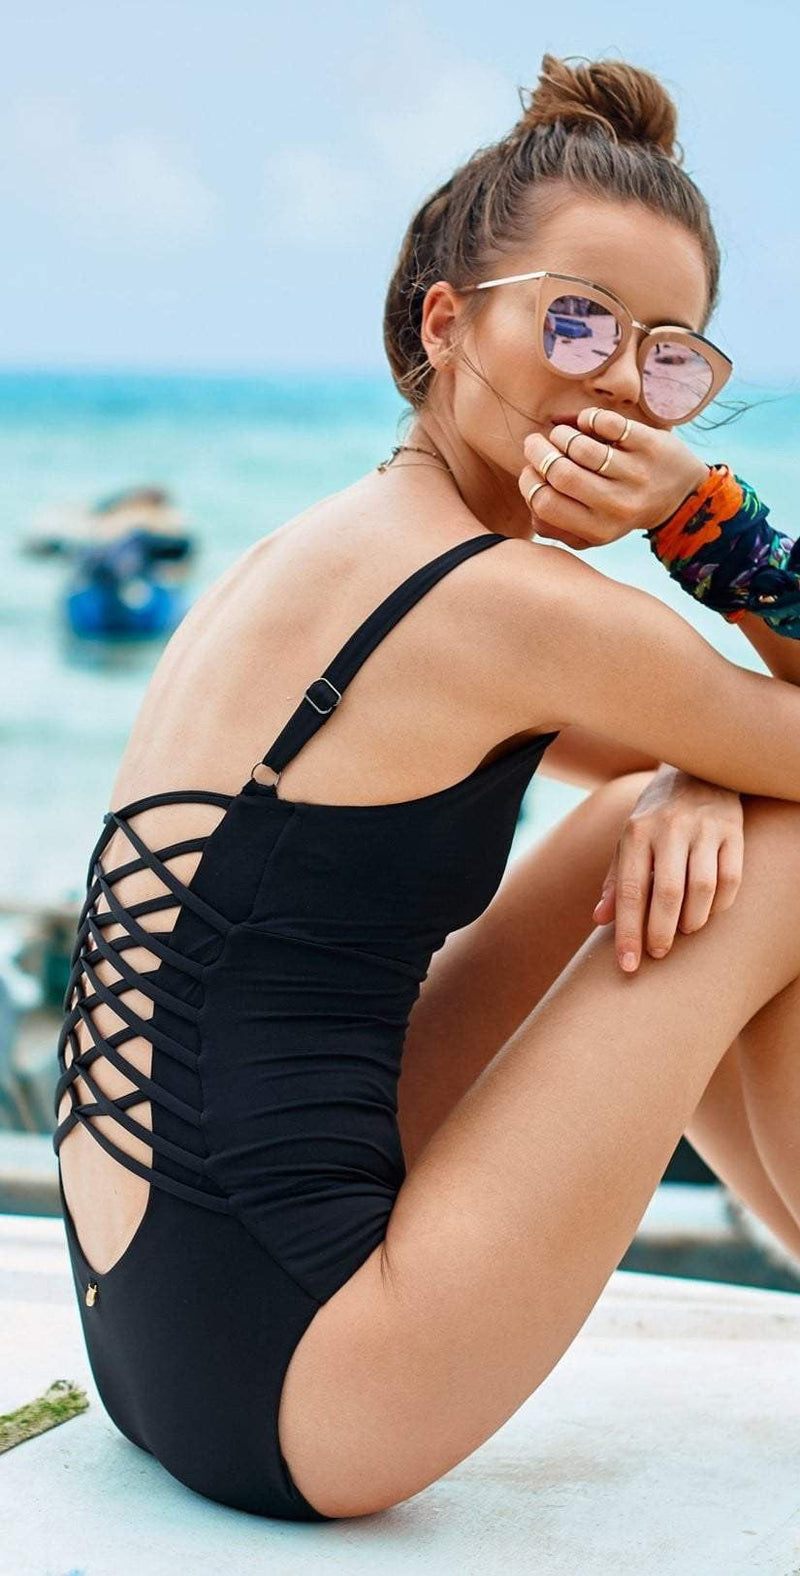 Malai Chief Fishbone One Piece in Black OP0084-BLK: